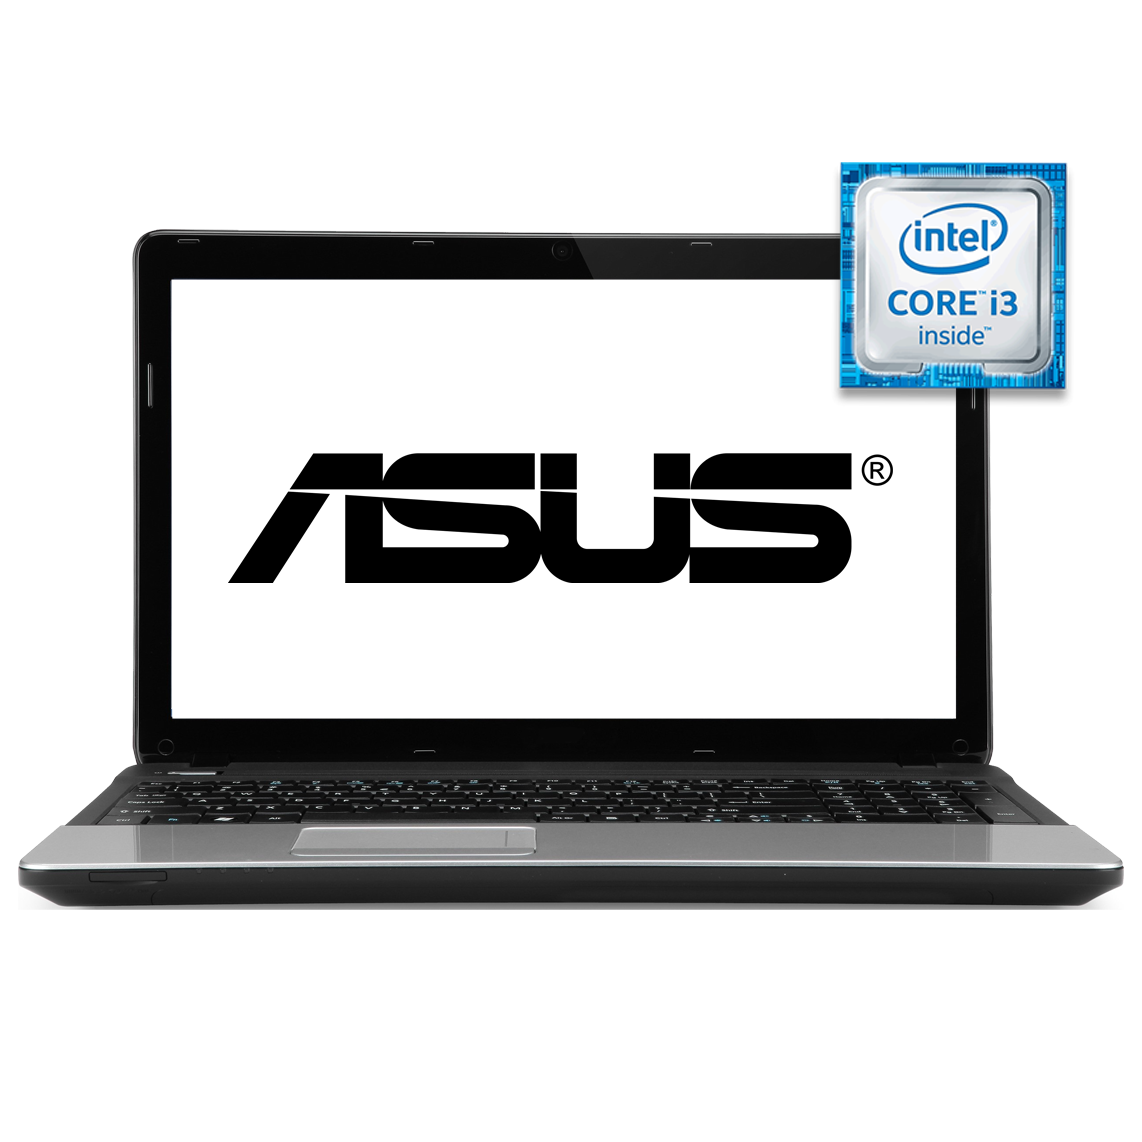 ASUS - 15 inch Core i3 2nd Gen